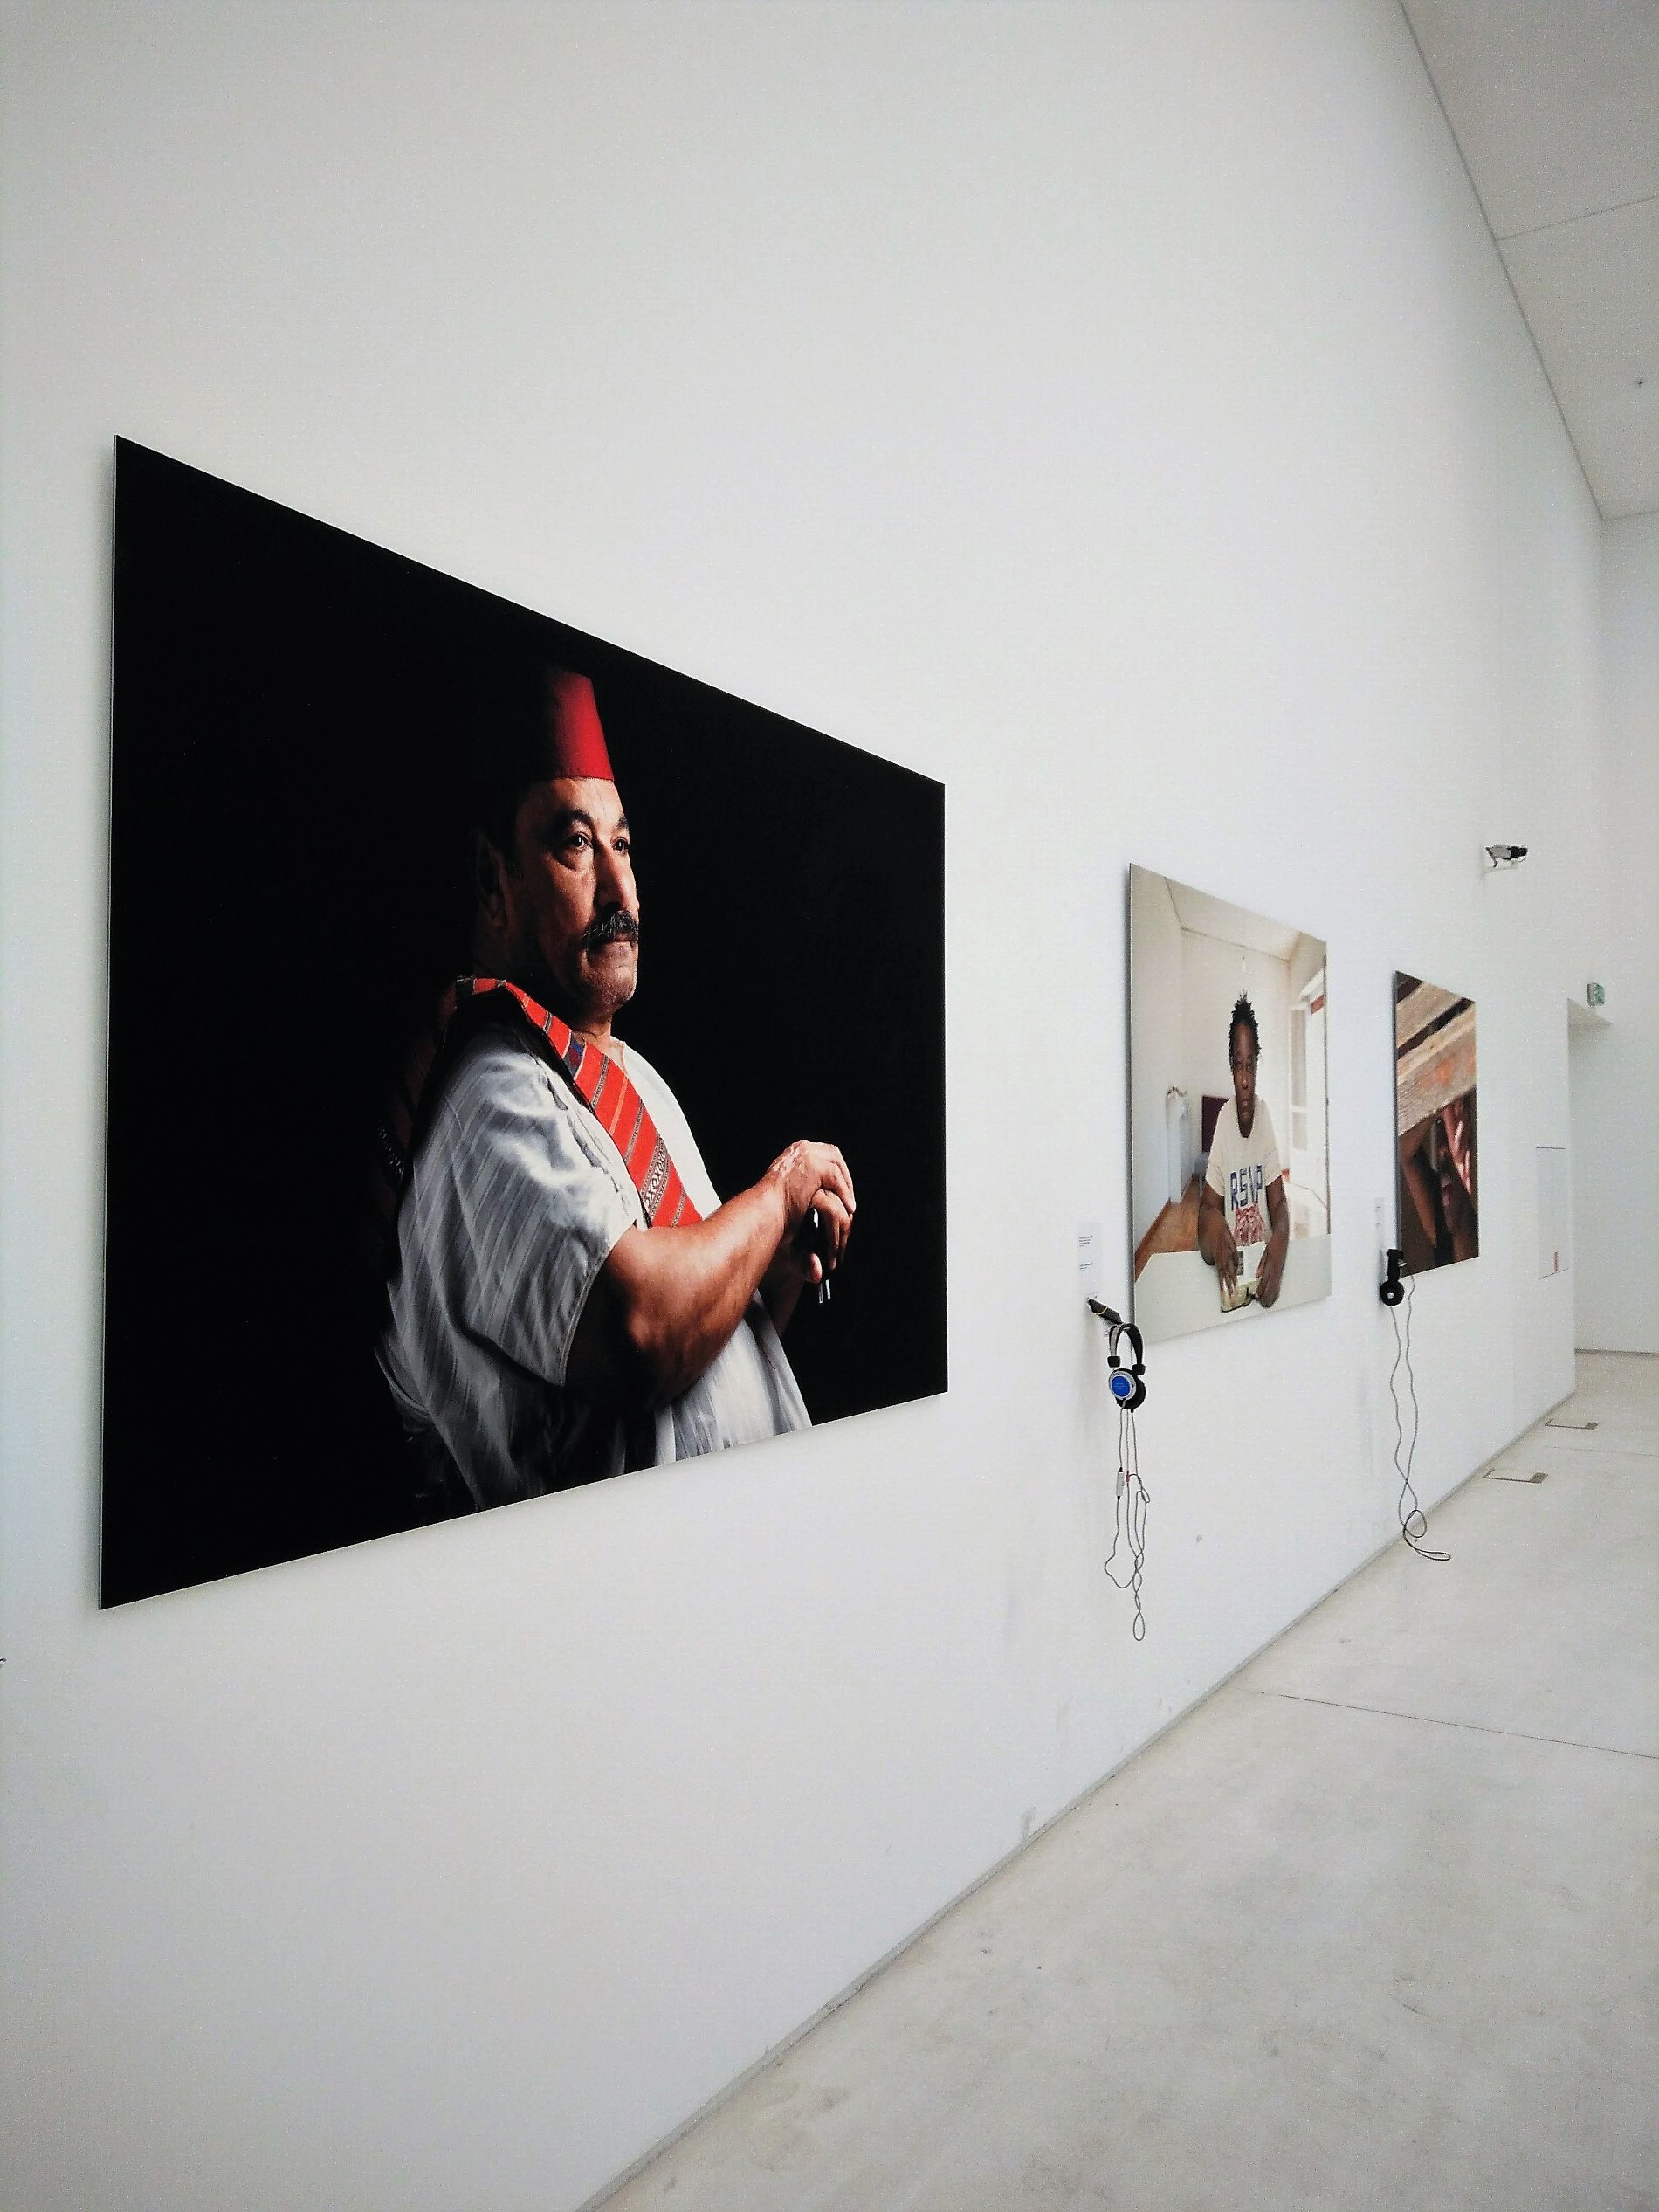 Hopes and dreams of people from all different kinds of backgrounds at the new EMST exhibition in Athens.